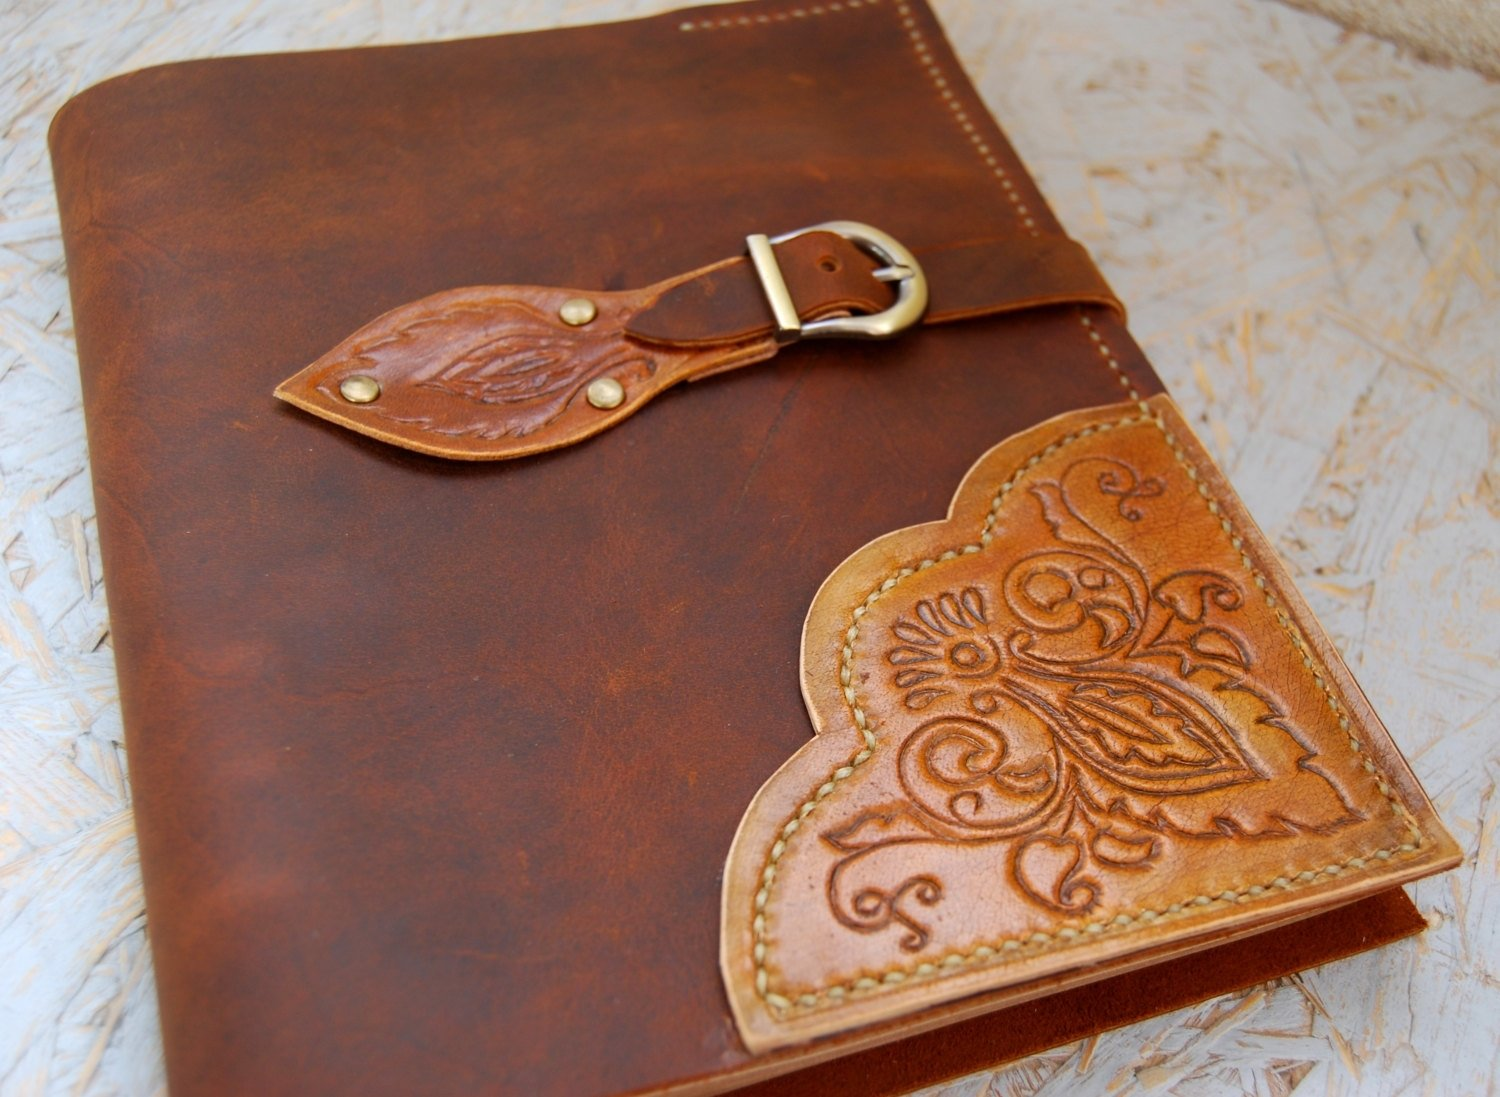 10 Wonderful Leather Anniversary Gift Ideas For Her 5 traditional paper anniversary gift ideas for her paper 2021